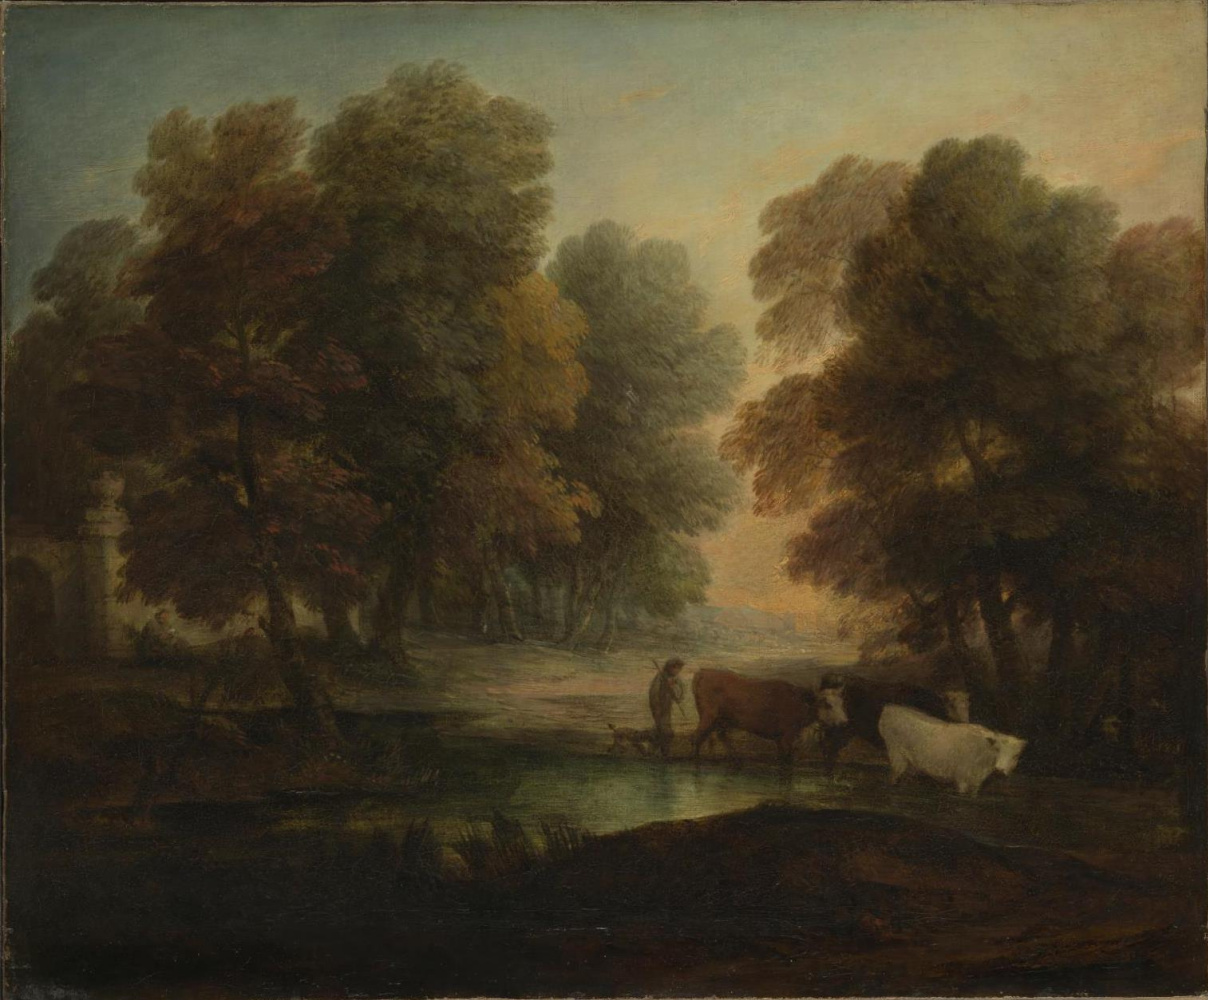 Thomas Gainsborough. A shepherd boy with cows near the pond